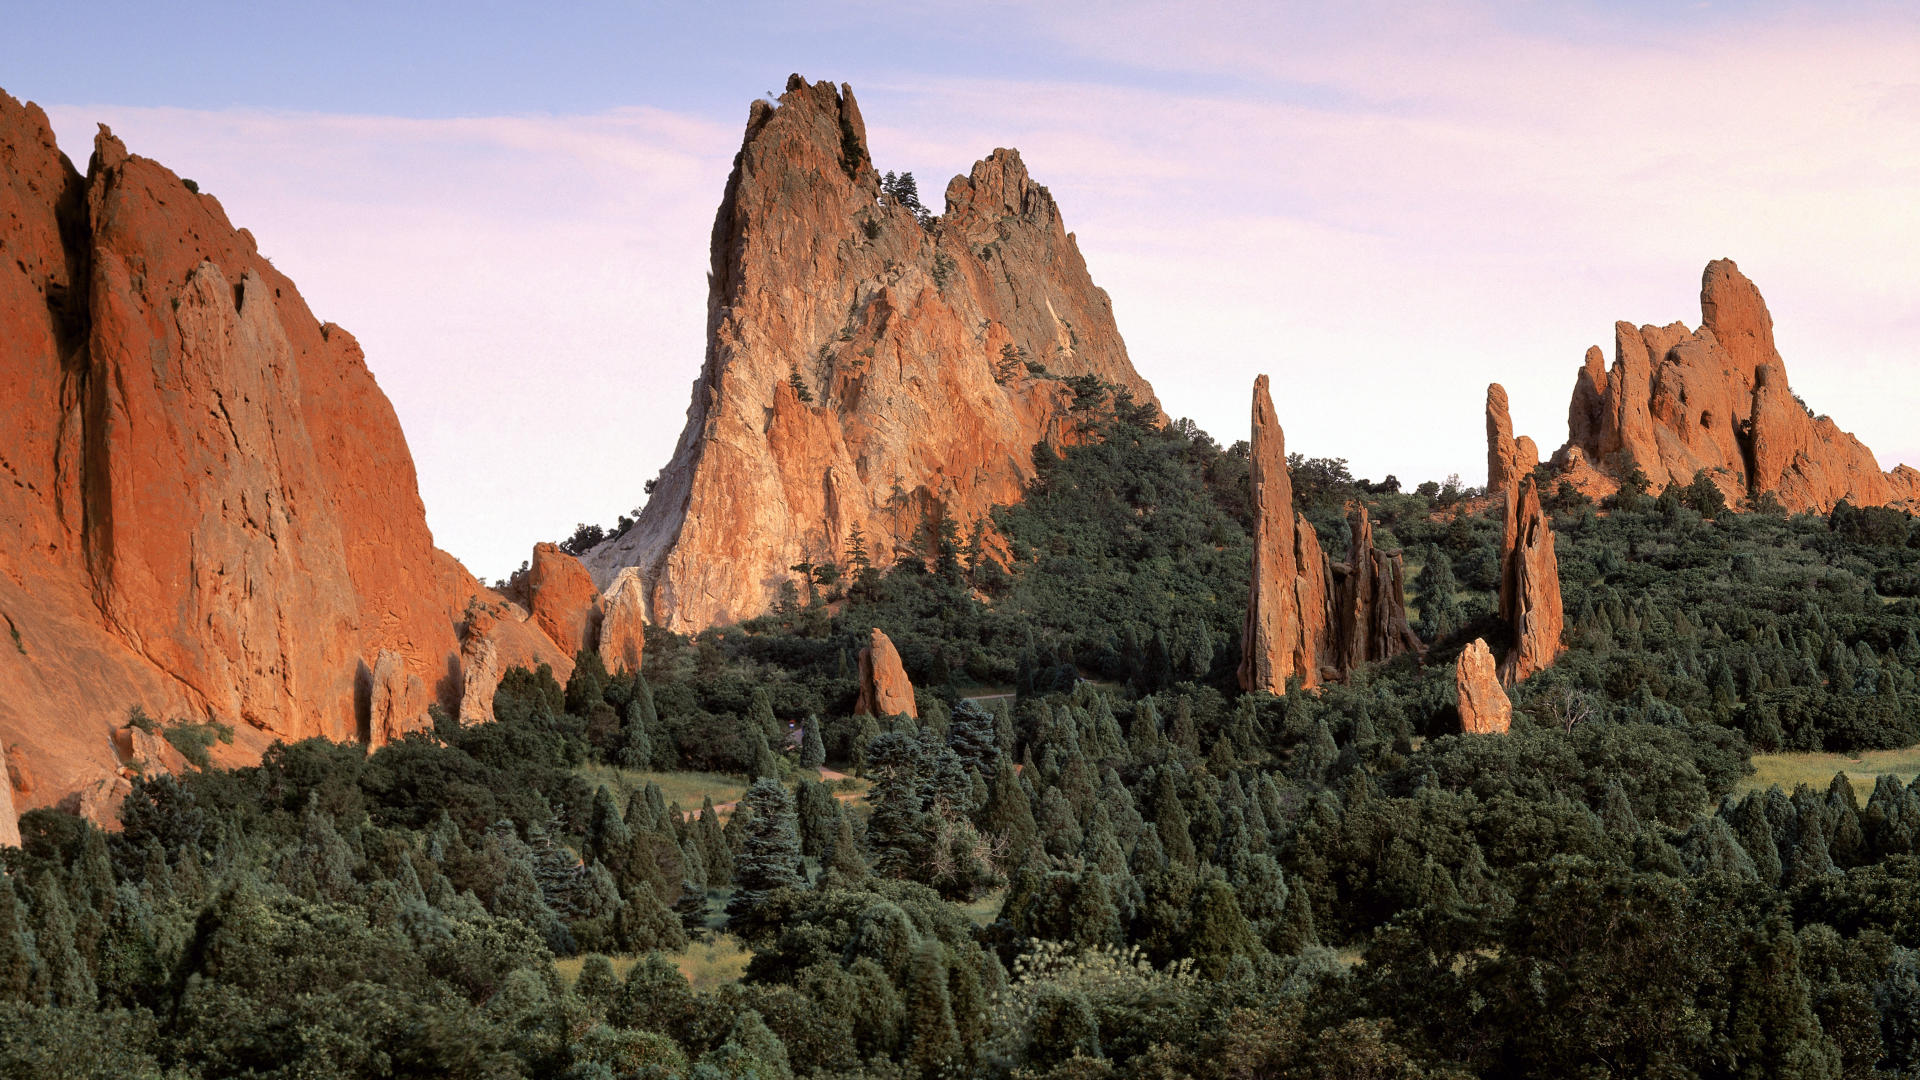 Garden of the gods is a public park located in colorado - Garden of the gods colorado springs co ...